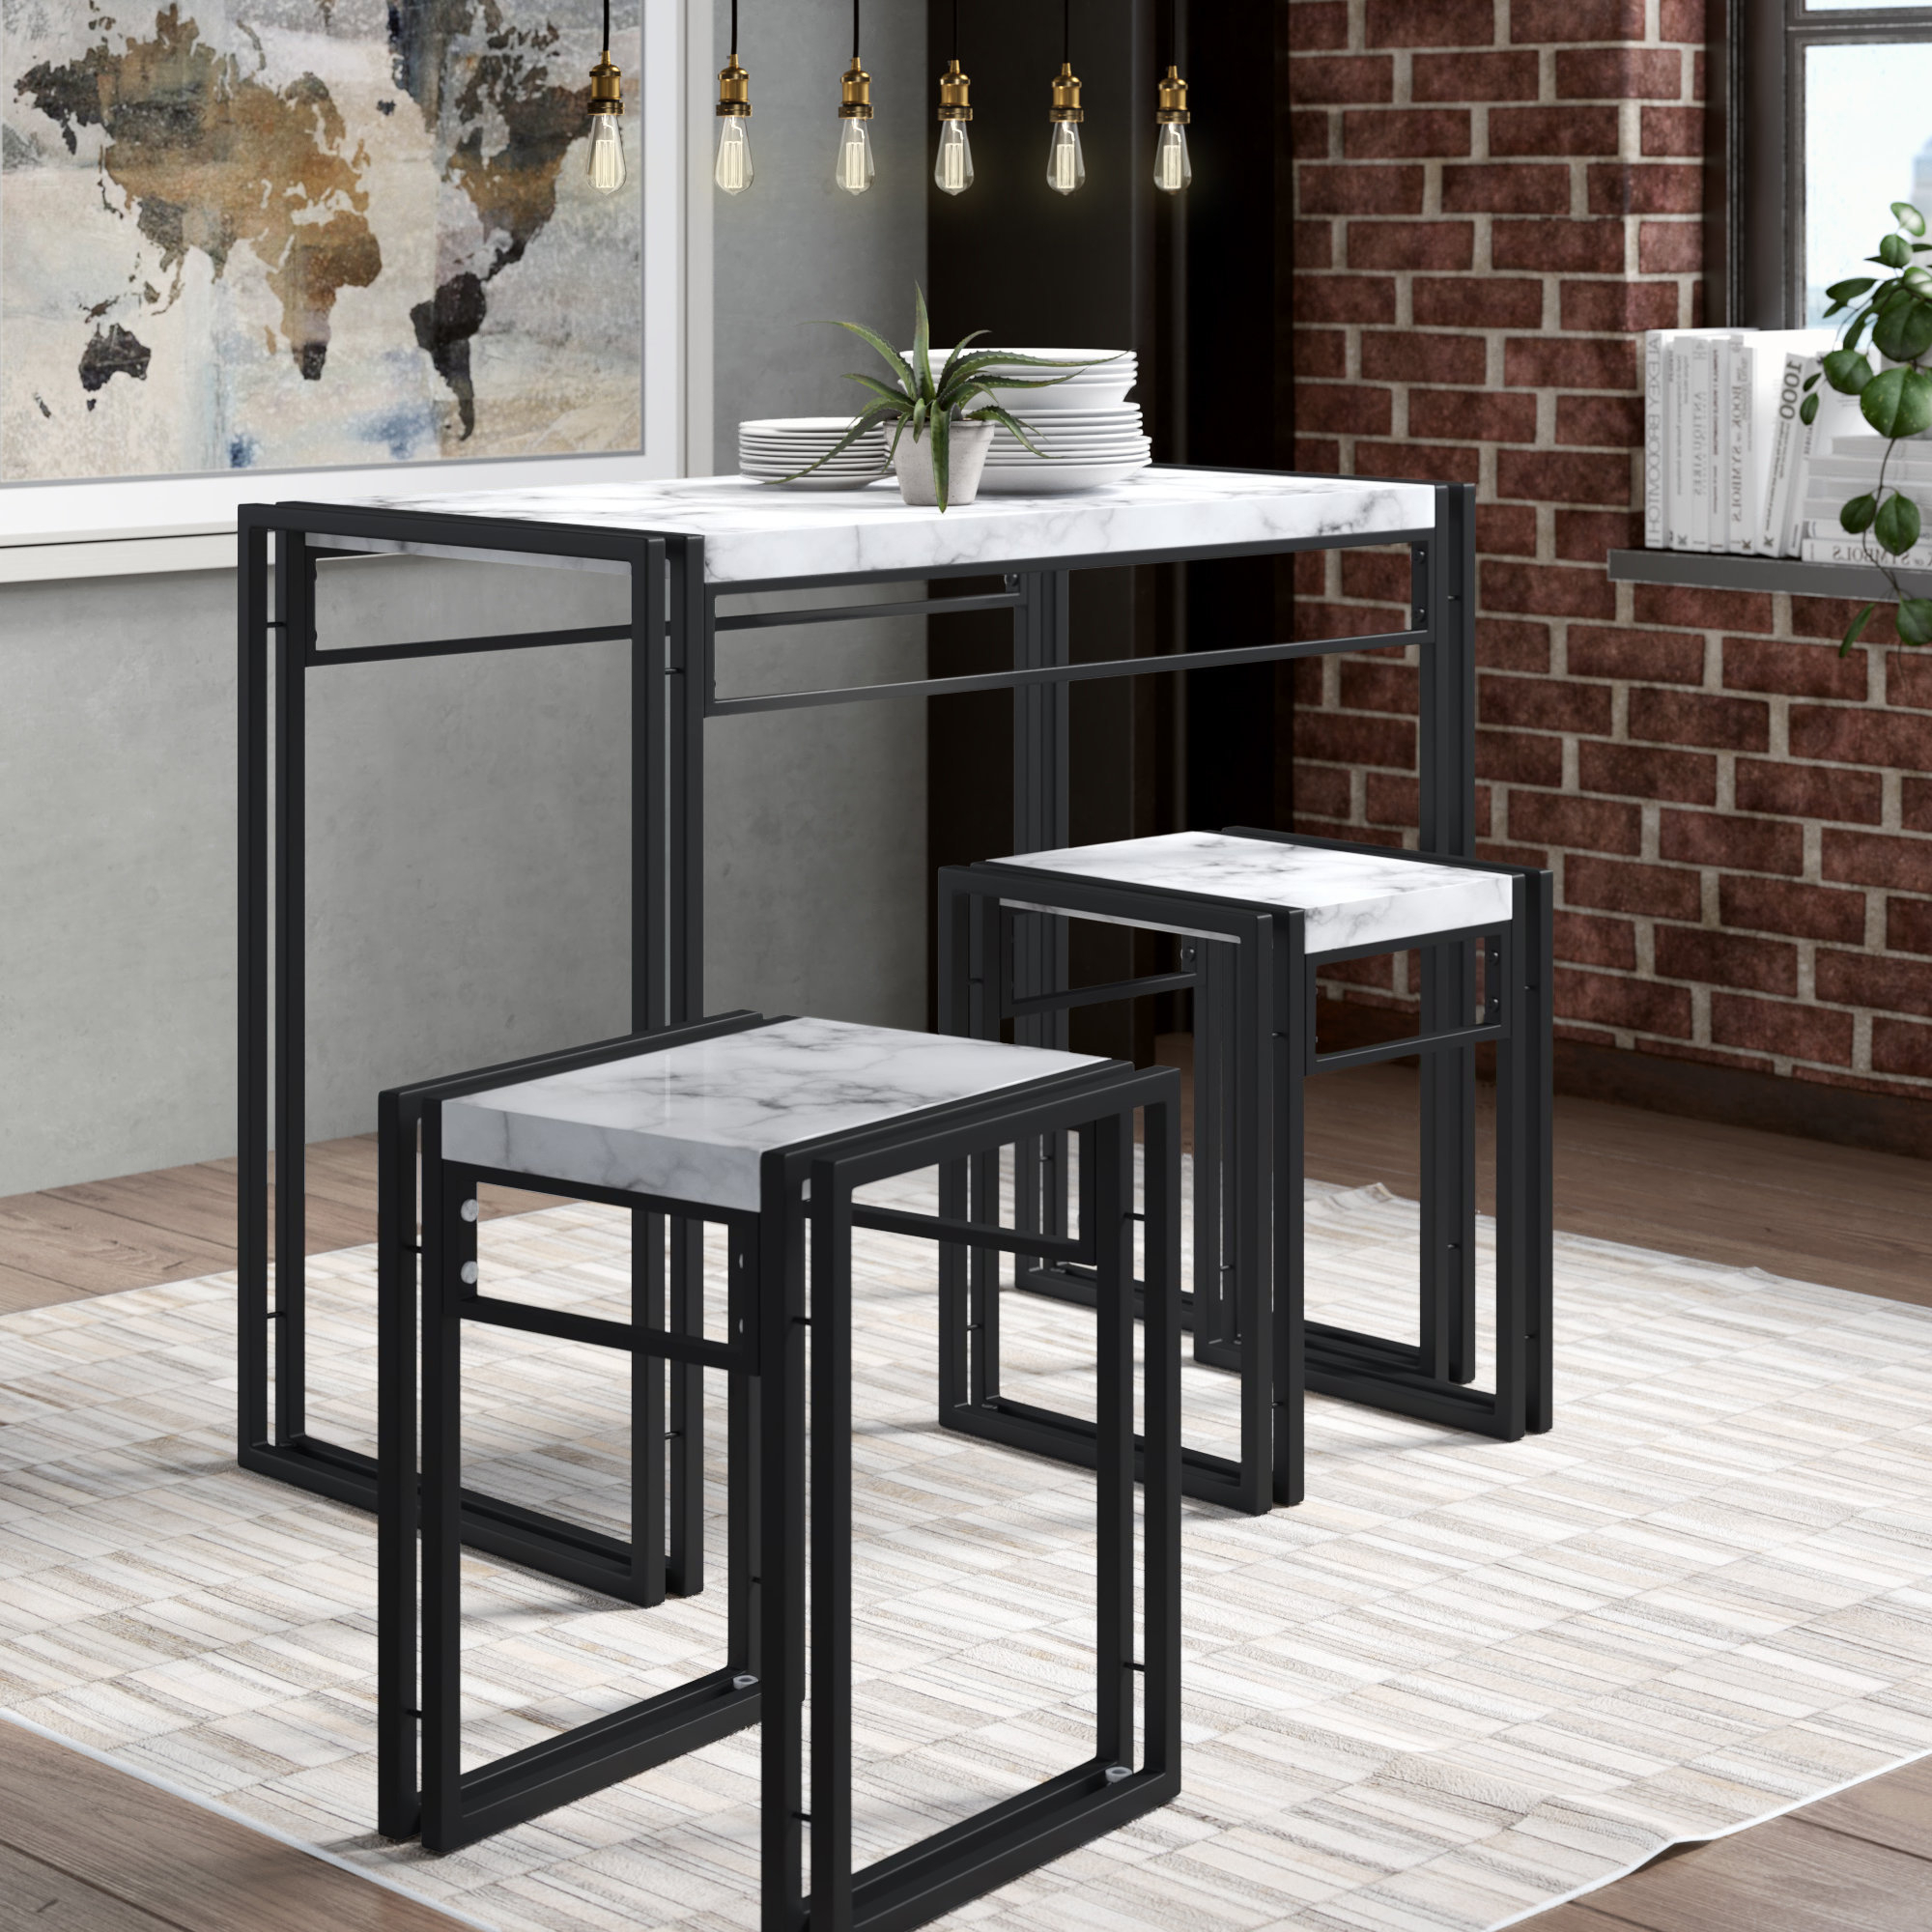 Partin 3 Piece Dining Sets Intended For Most Up To Date Williston Forge Debby Small Space 3 Piece Dining Set & Reviews (View 4 of 25)